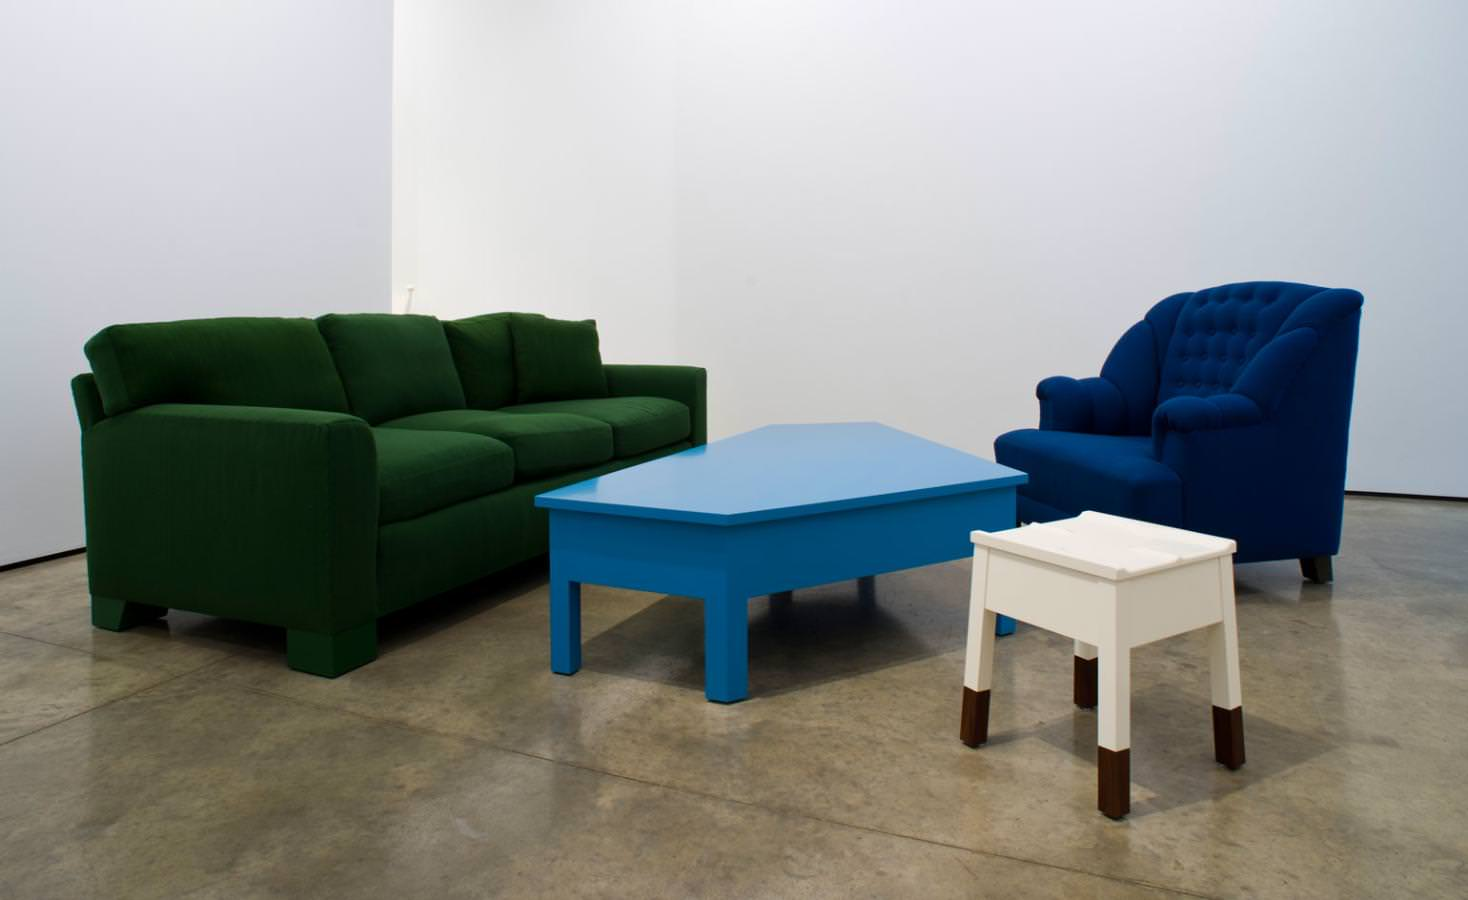 Installation View Of Roy McMakinu0027s U0027Domestic Furnitureu0027, On Show At Lora  Reynolds Gallery